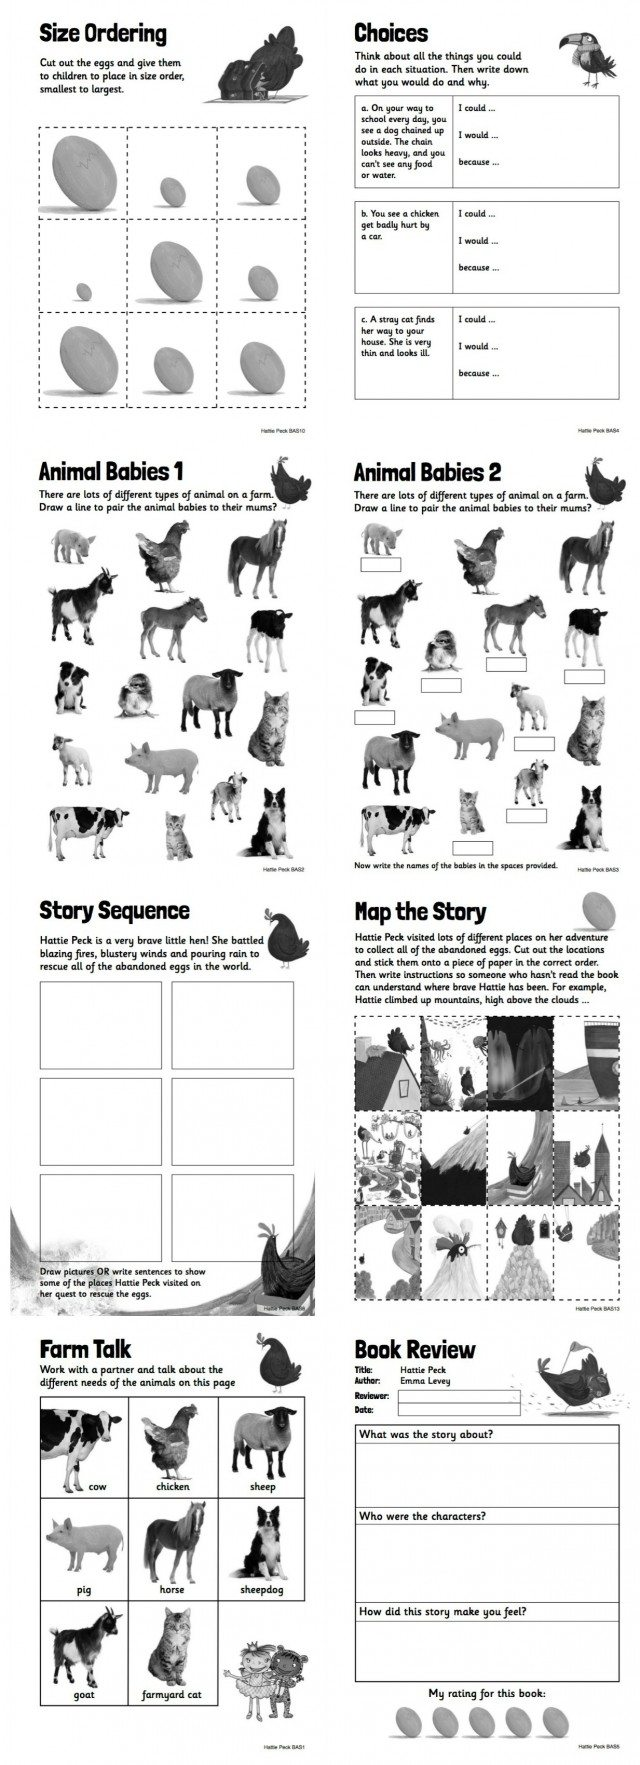 Free reading worksheets to motivate young readers